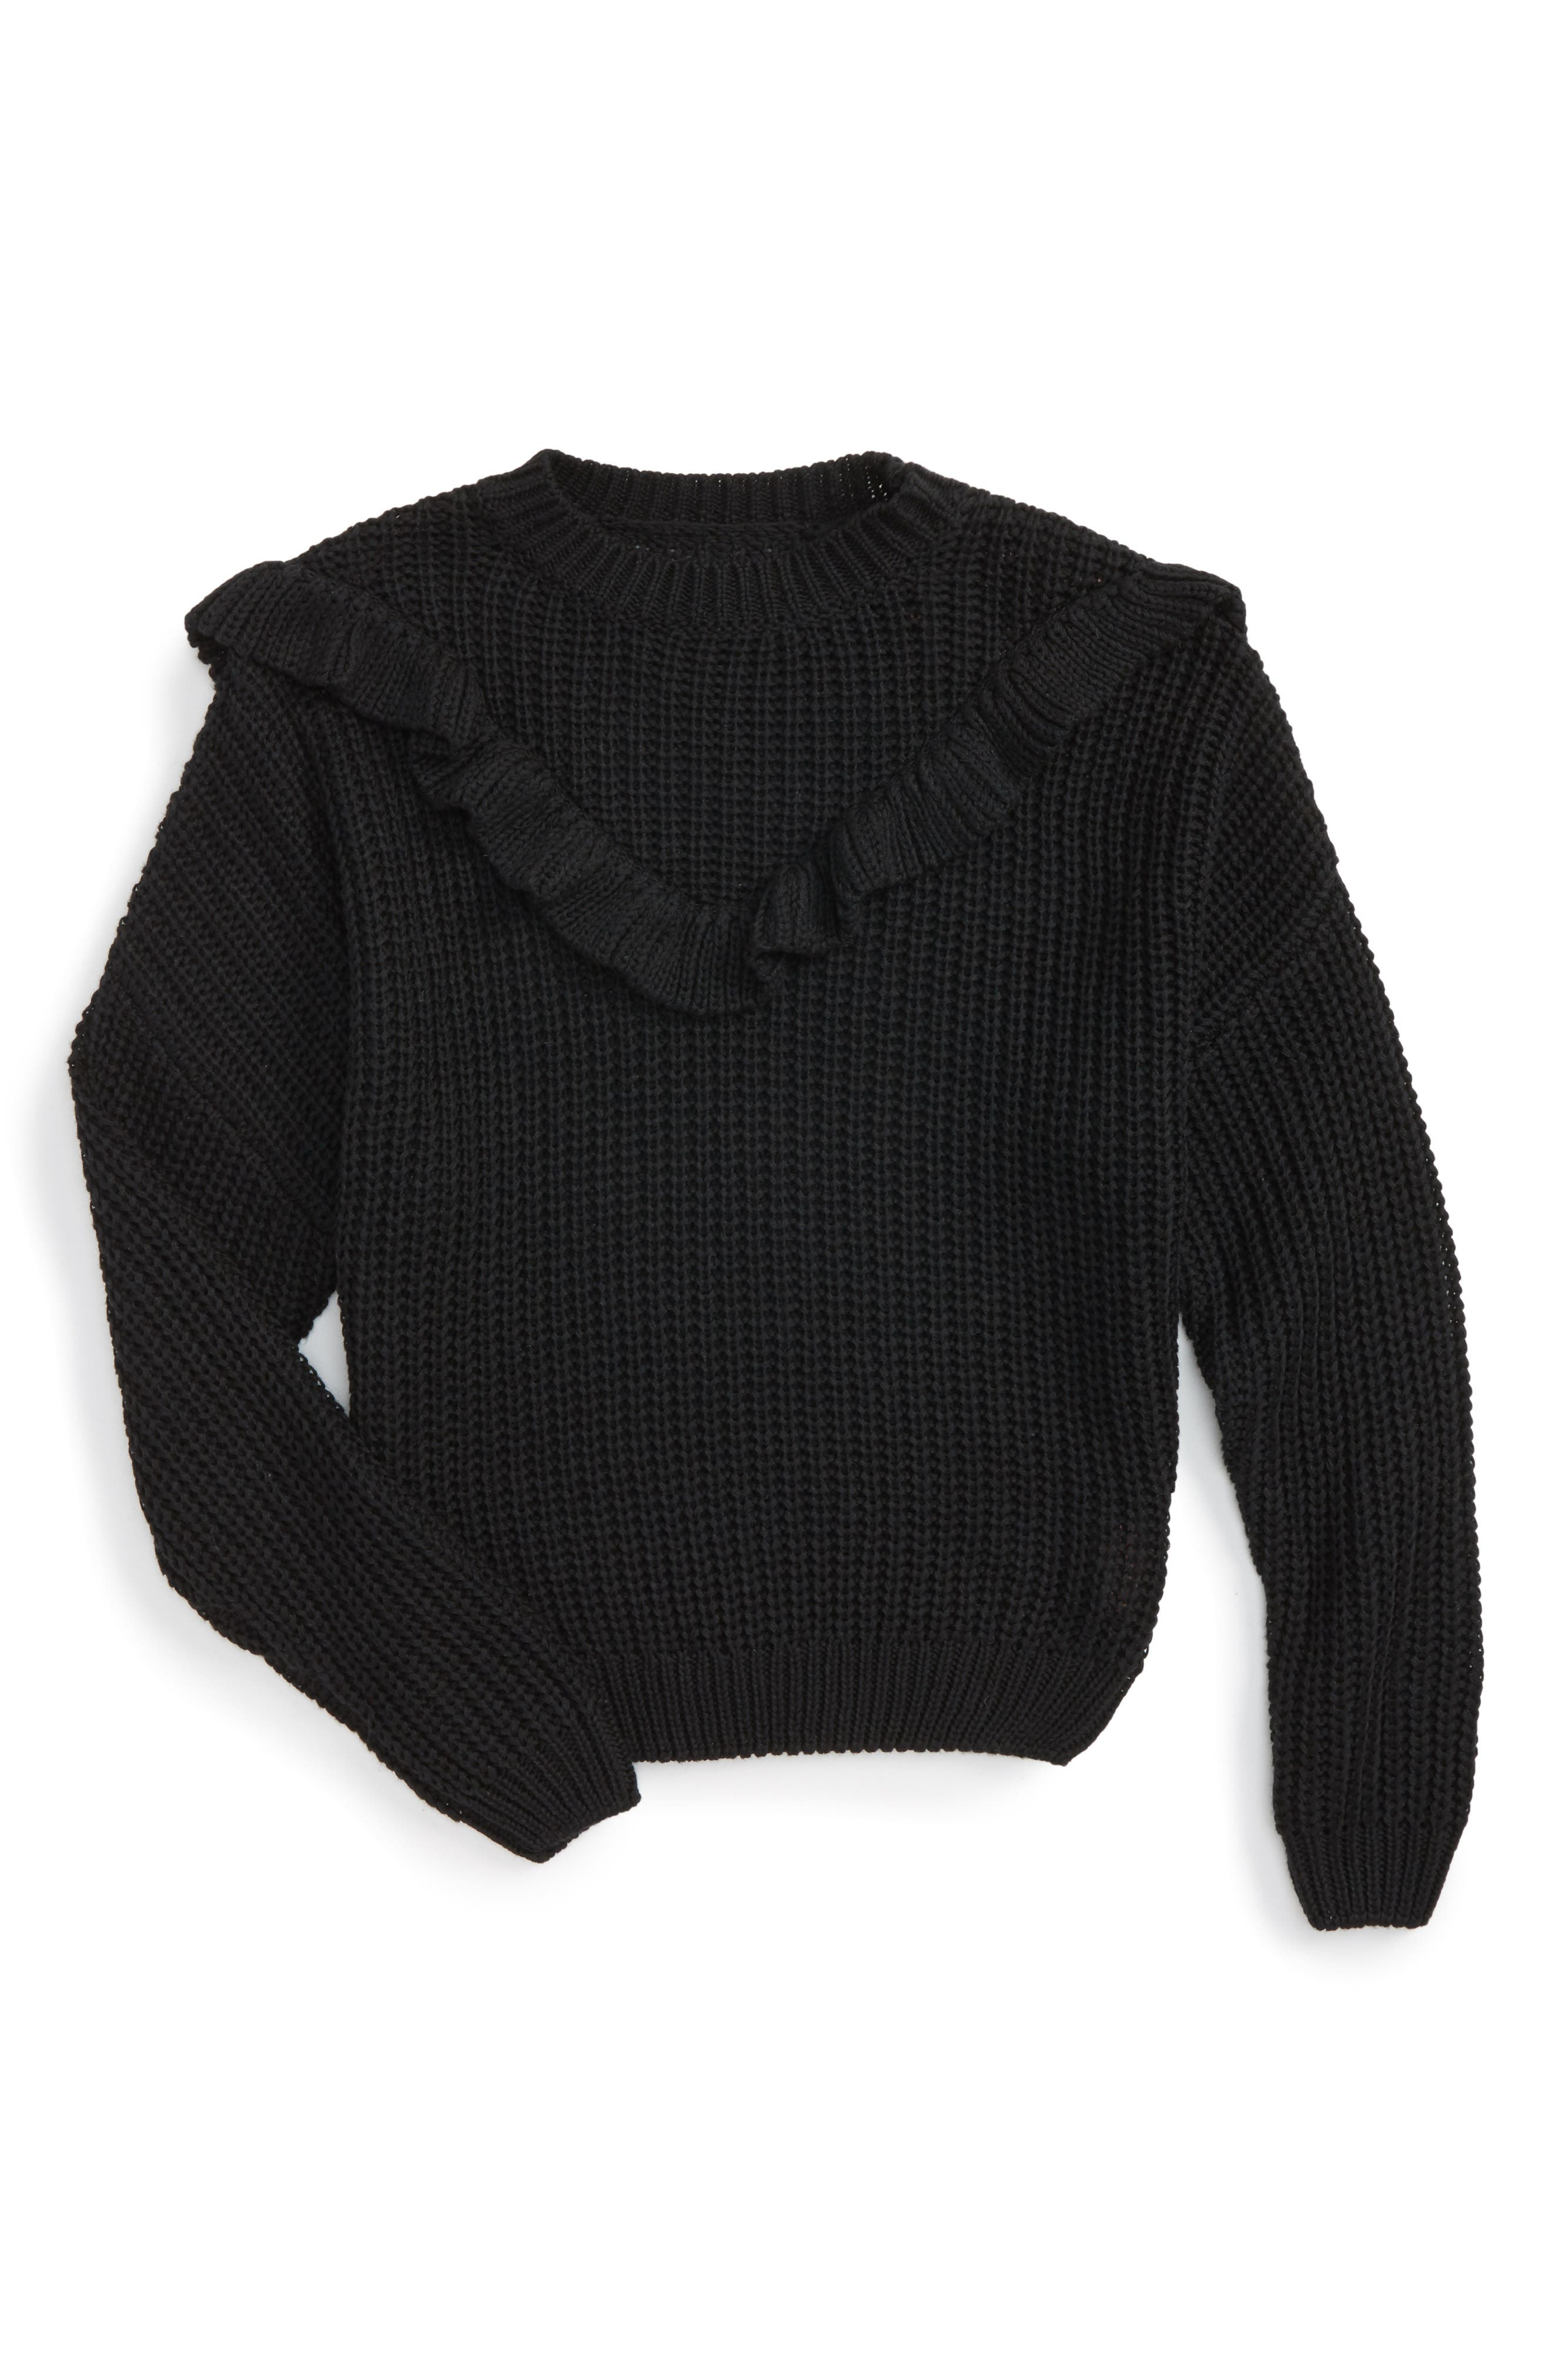 BLANCNYC Ruffle Sweater (Big Girls)